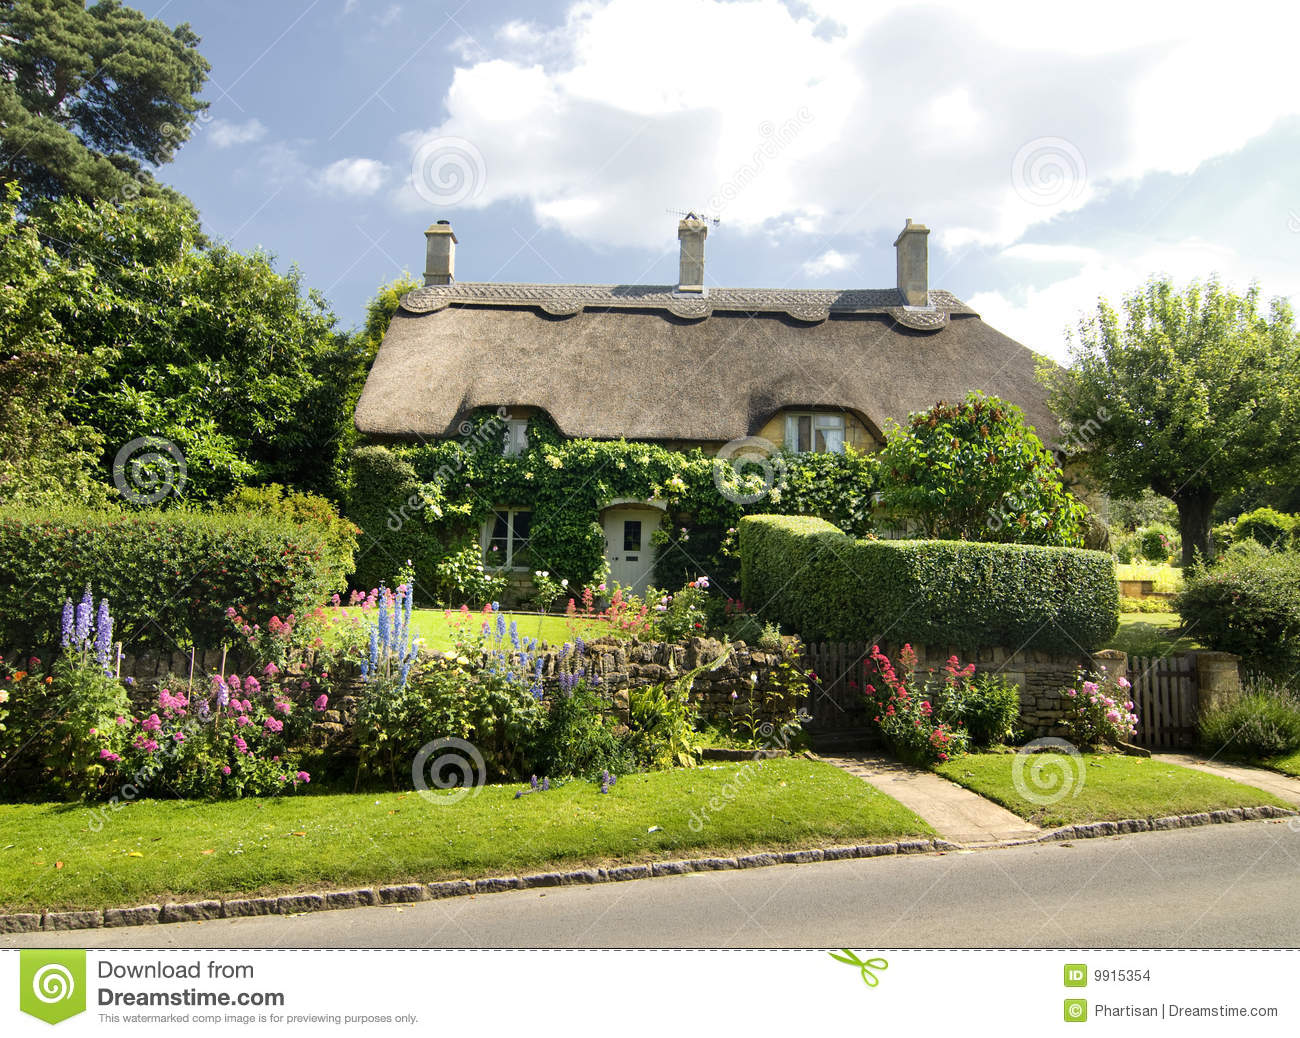 Stock Images Quaint Countryside Cottage England Image9915354 on perfect home plans